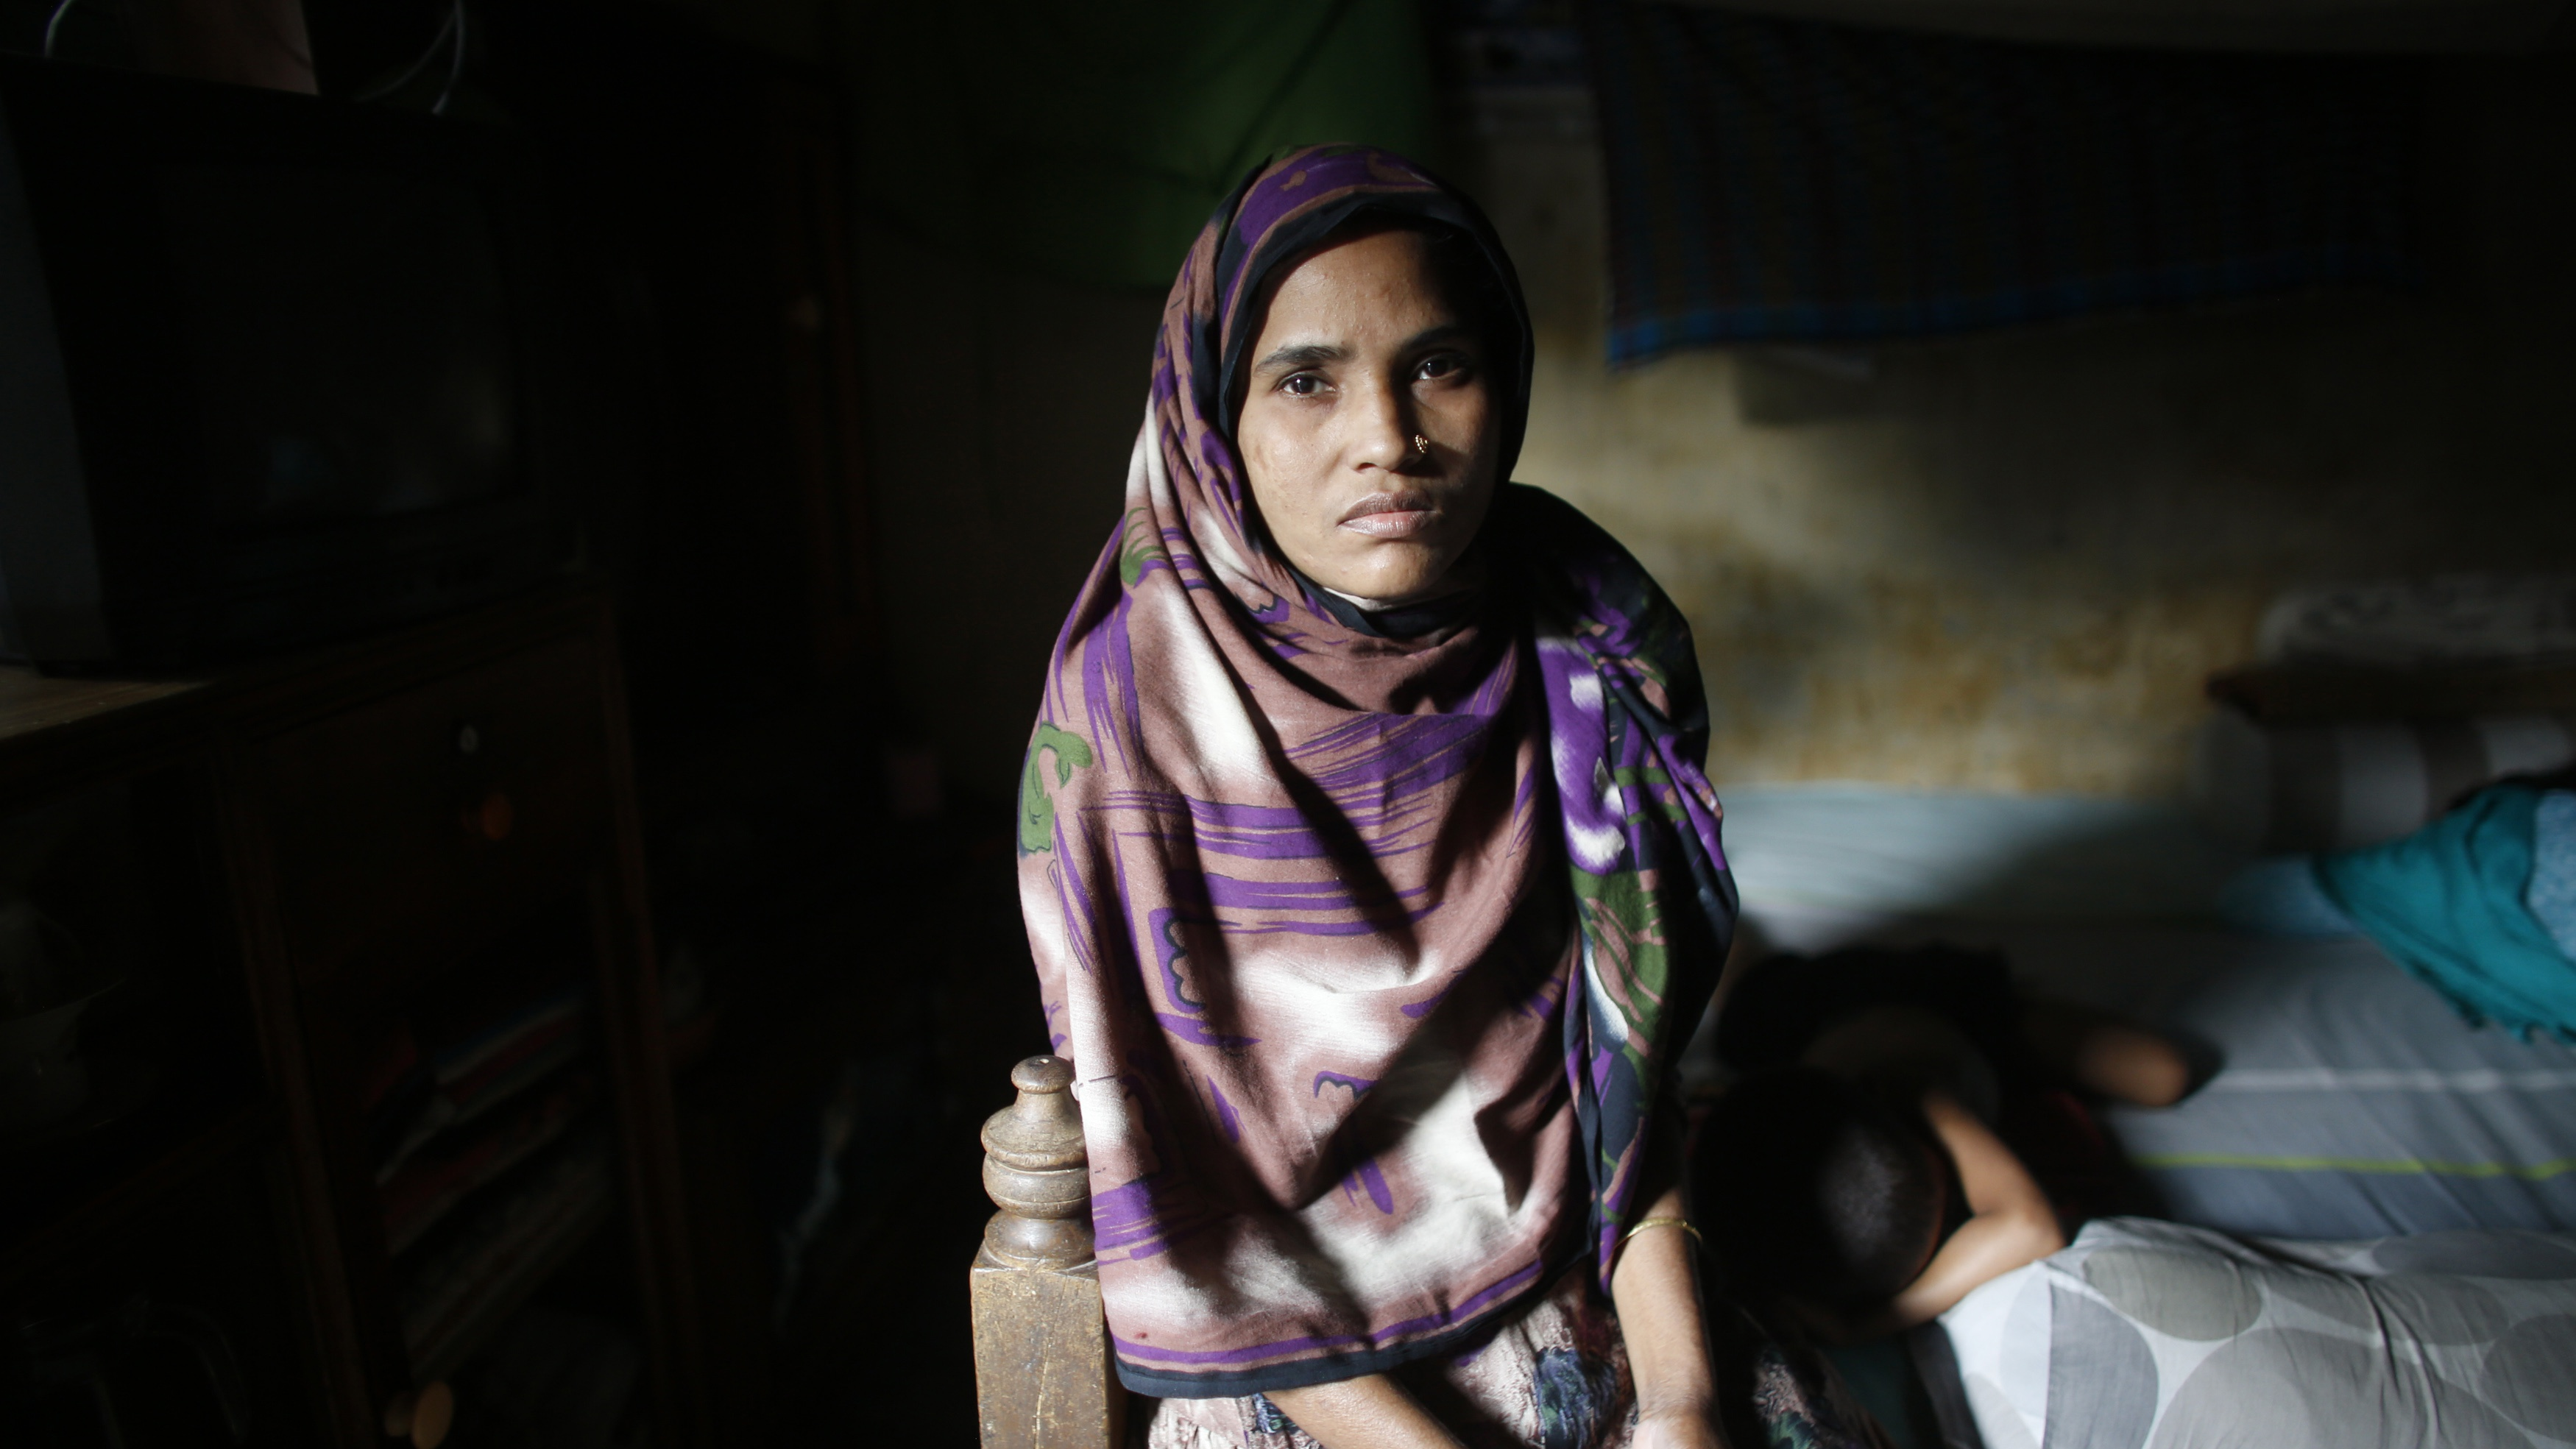 Nilufar Yesmin, 36, who was rescued from the rubble of the collapsed Rana Plaza building, sits inside her slum house in Savar April 21, 2014. Nilufar, who is unable to work due to a spinal injury sustained from the accident last year, says she has not received any compensation. Survivors of the world's worst garment factory accident, struggle to rebuild their lives from the rubble of the Rana Plaza collapse as Bangladesh readies to mark the first anniversary of the disaster that killed more than 1,100 people. Survivors of the tragedy are still haunted by the memories of the fateful day. The efforts to compensate victims and inspect factories remain frustratingly slow and erratic.